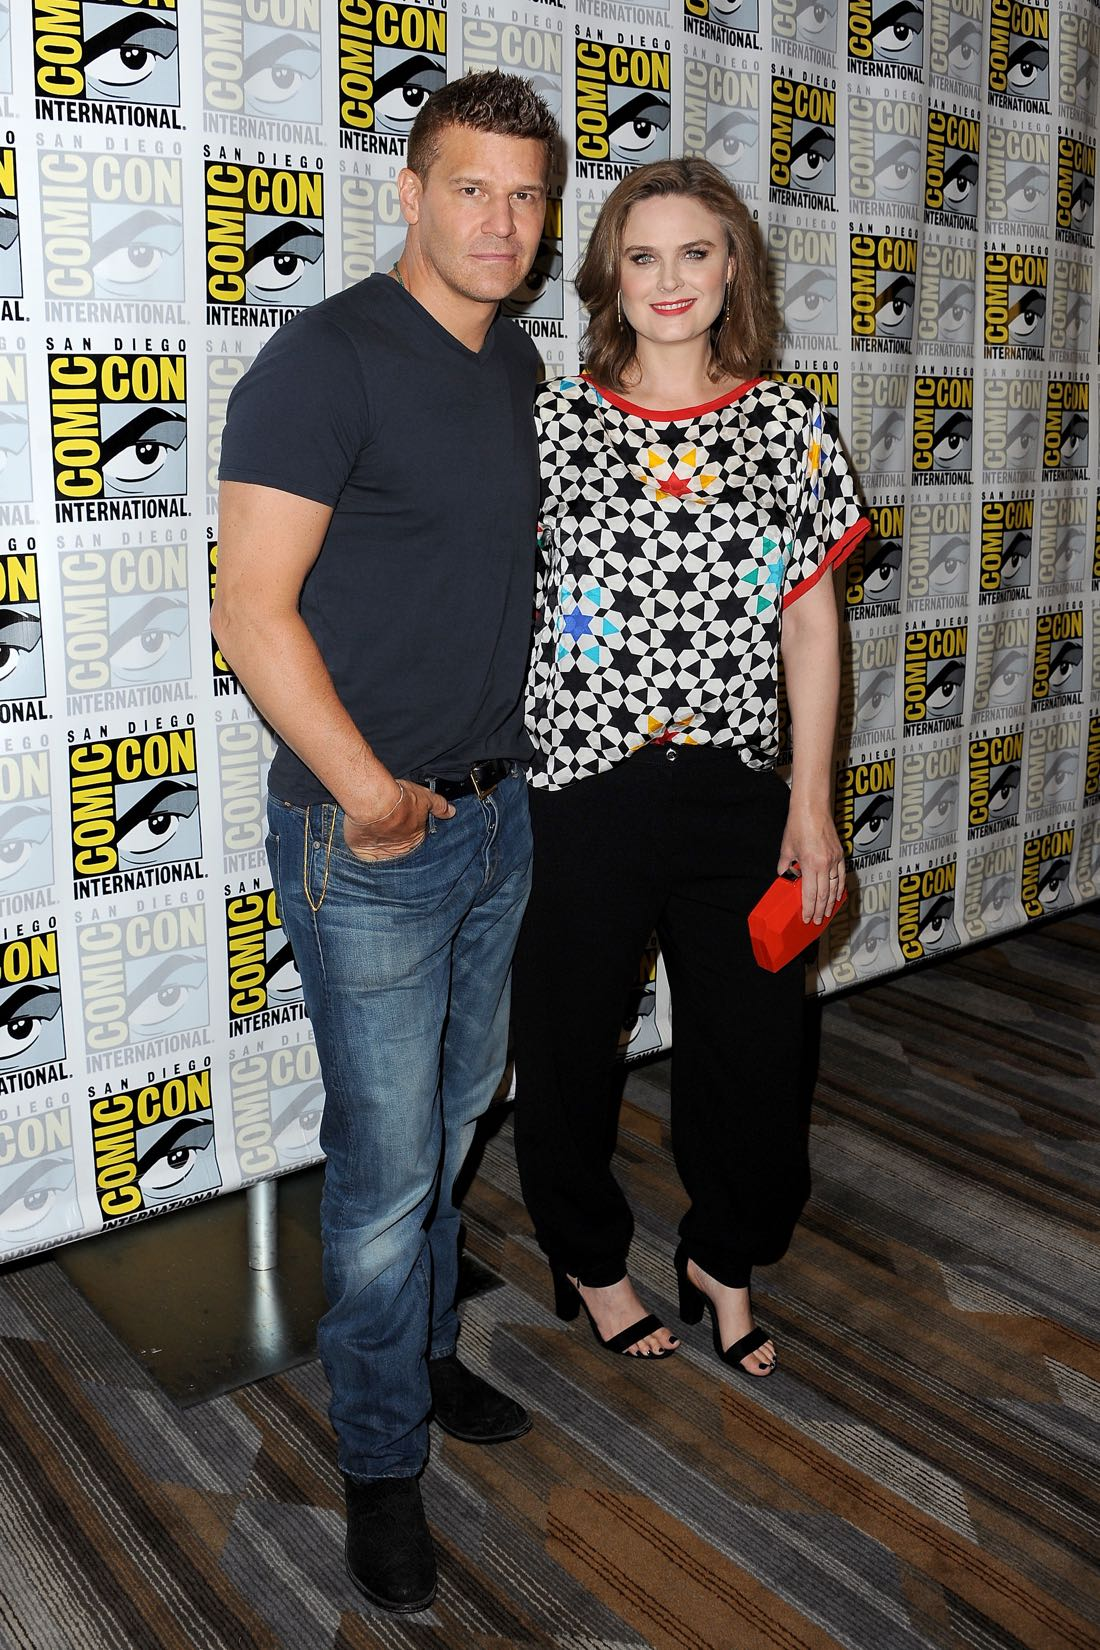 FOX FANFARE AT SAN DIEGO COMIC-CON © 2016: L-R: BONES cast members David Boreanaz and Emily Deschanel during the BONES press room on Friday, July 22 at the FOX FANFARE AT SAN DIEGO COMIC-CON © 2016. CR: Scott Kirkland/FOX © 2016 FOX BROADCASTING